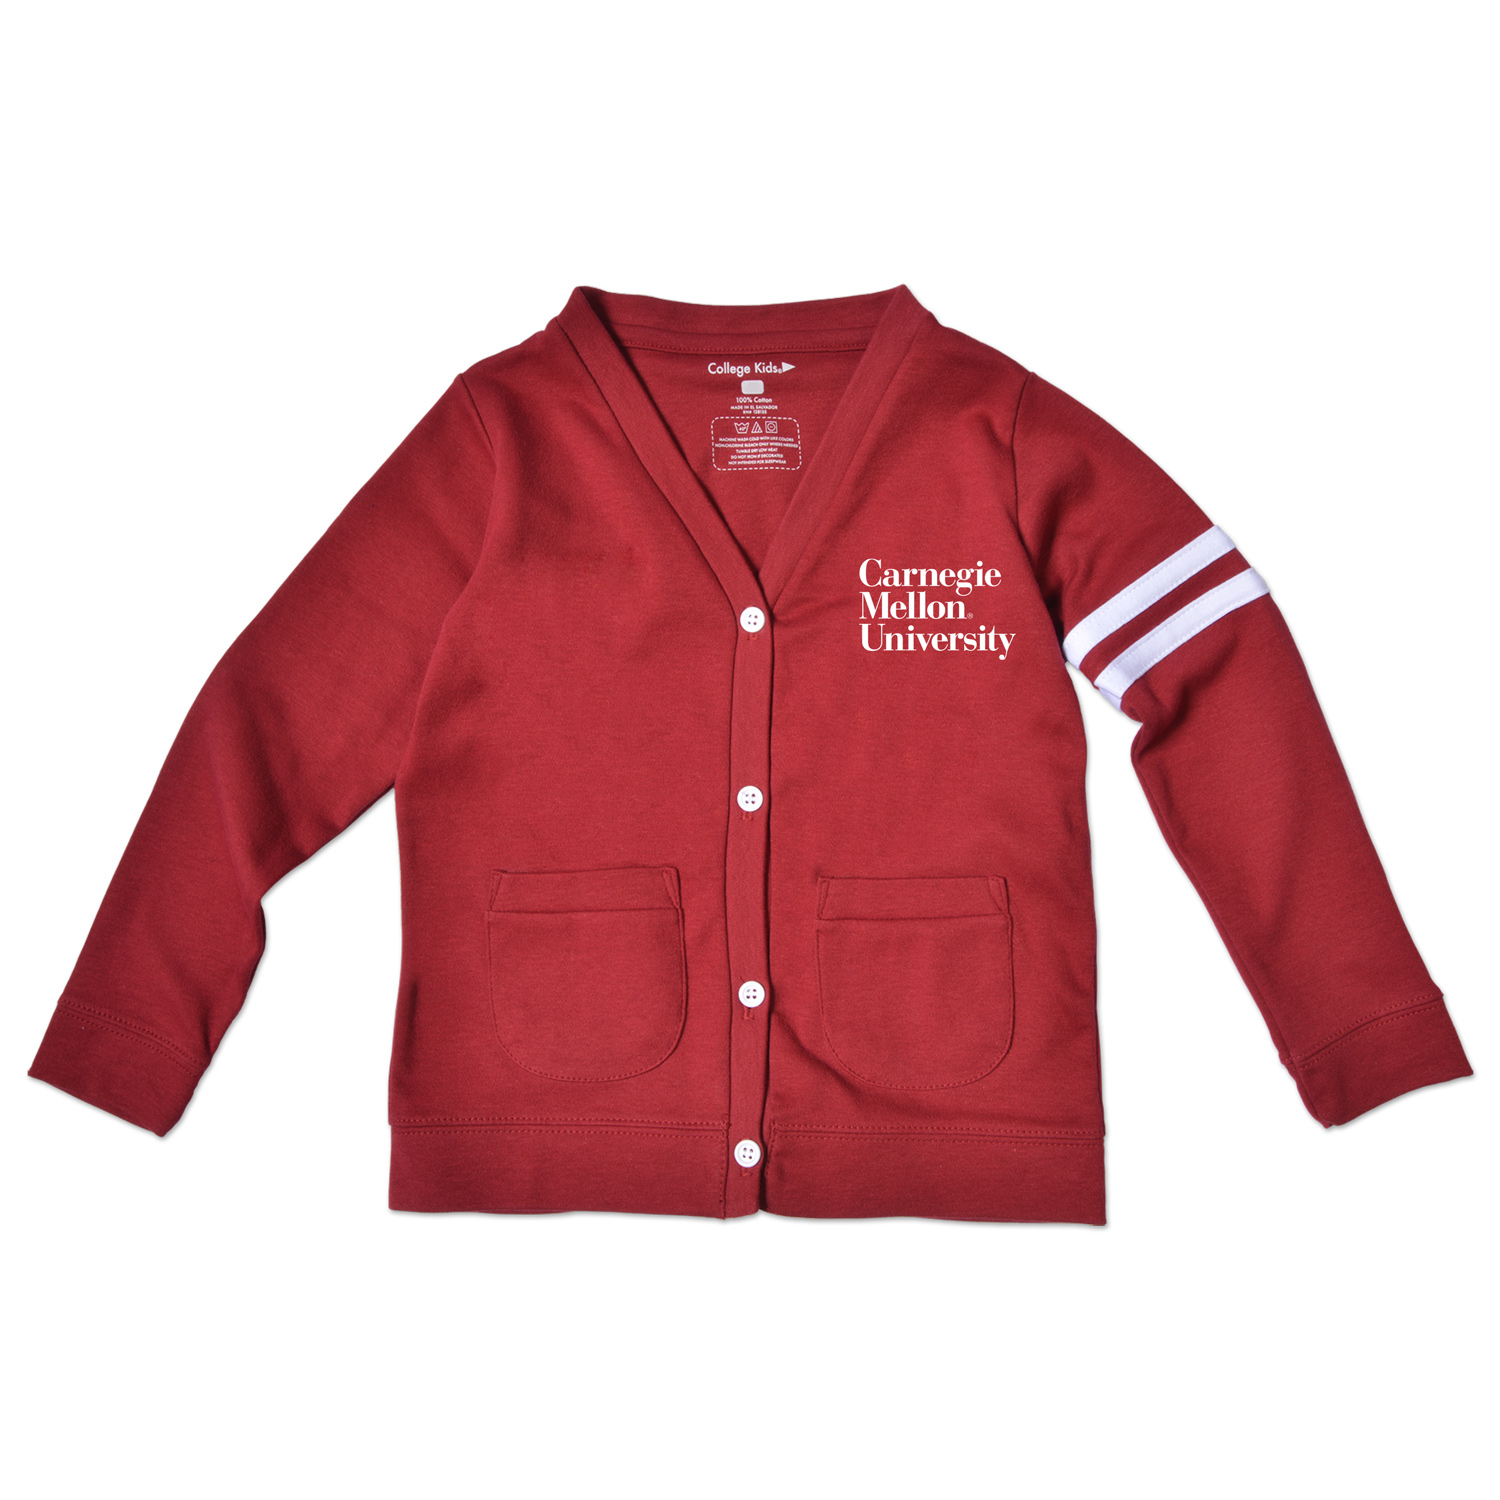 Toddler Cardigan: Cardinal